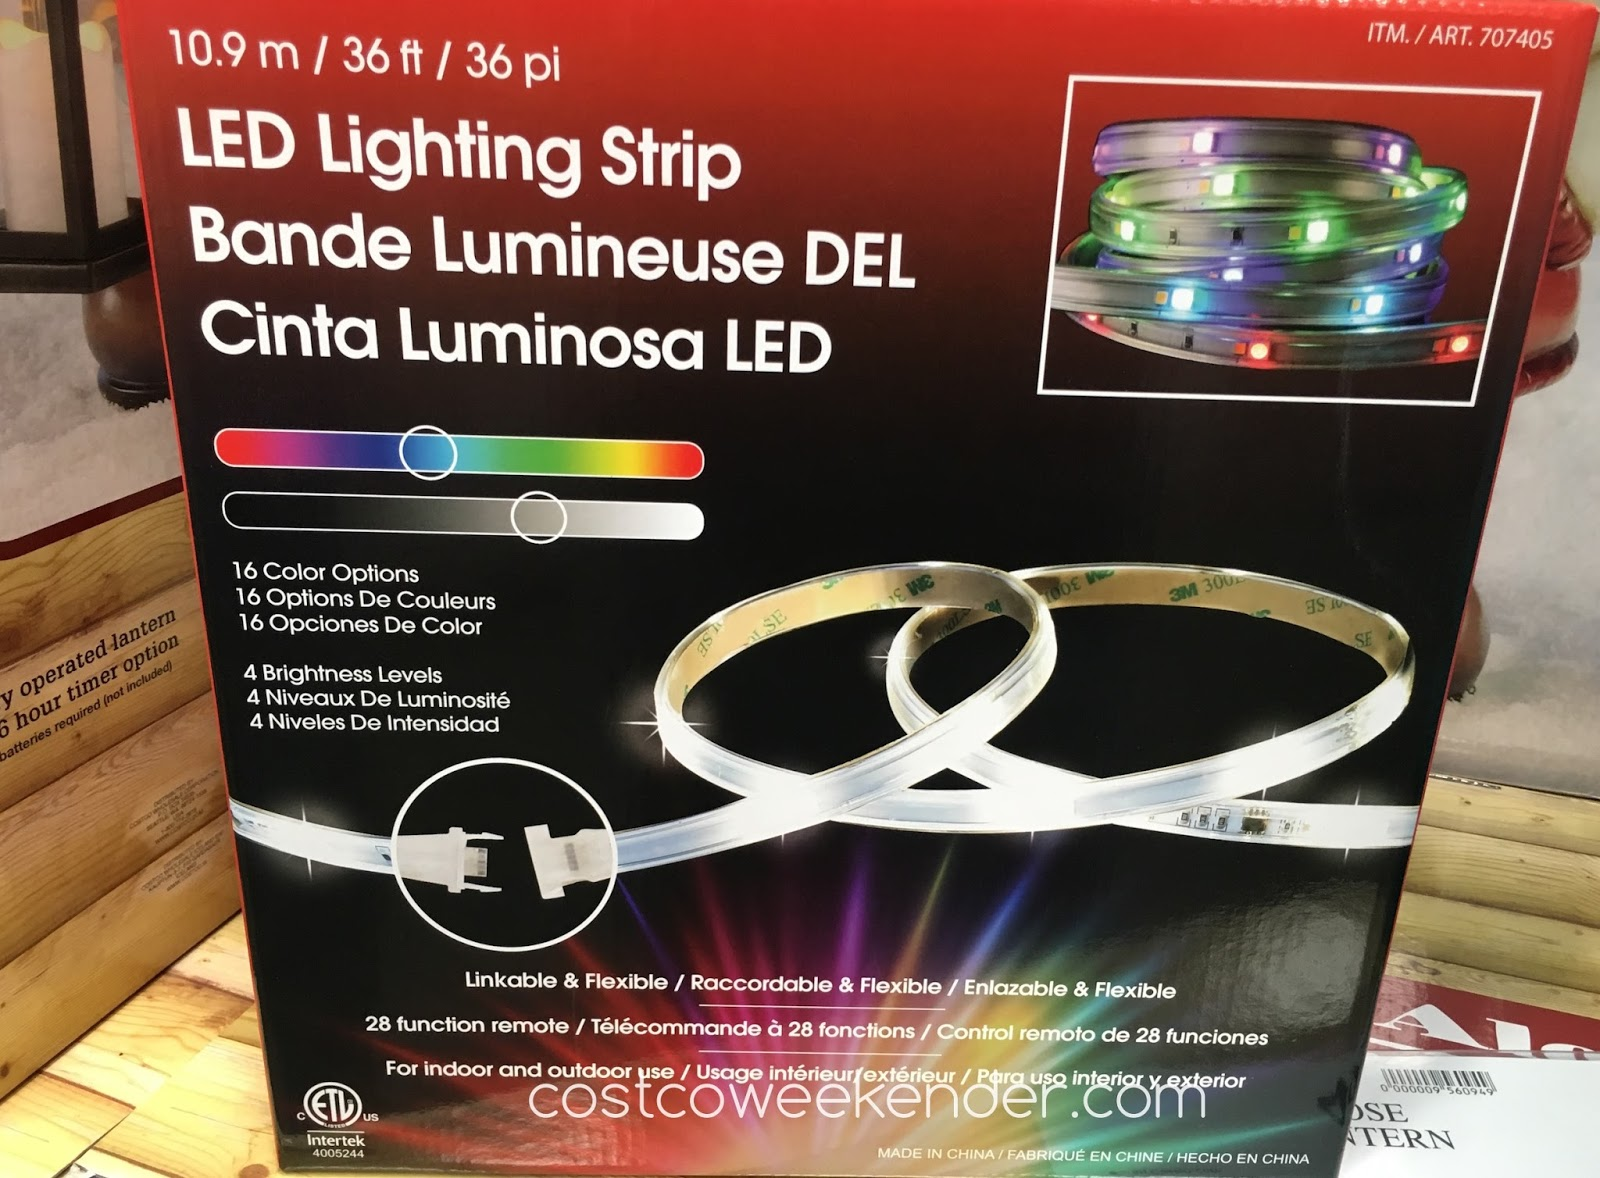 Dsi led lighting strip costco weekender place leds almost anywhere with the dsi led lighting strip aloadofball Images